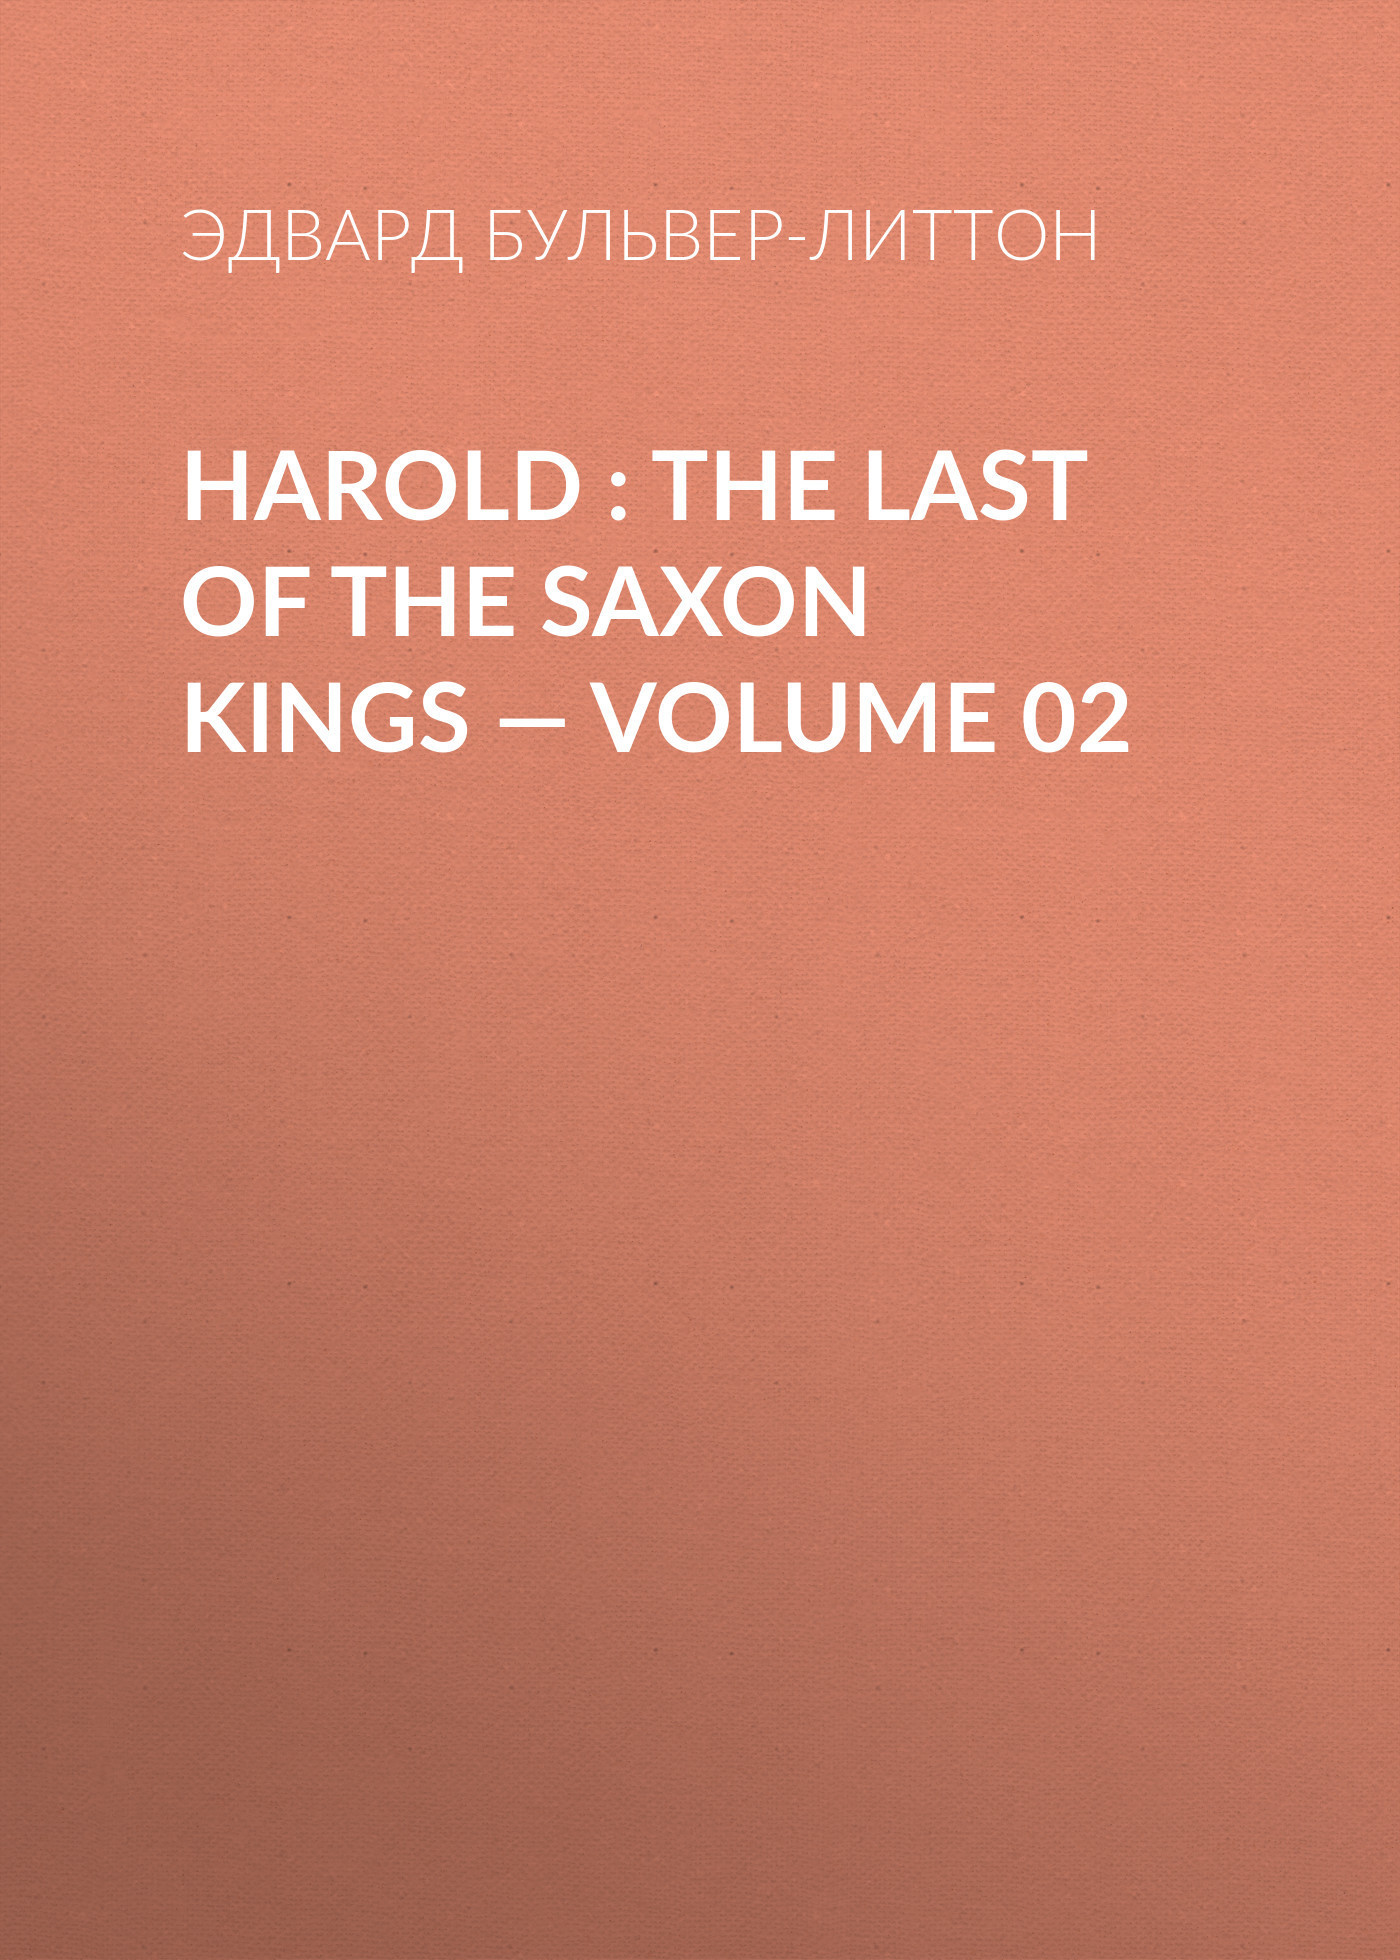 Эдвард Бульвер-Литтон Harold : the Last of the Saxon Kings — Volume 02 косметика для мамы neutrogena крем для ног восстанавливающий 100 мл